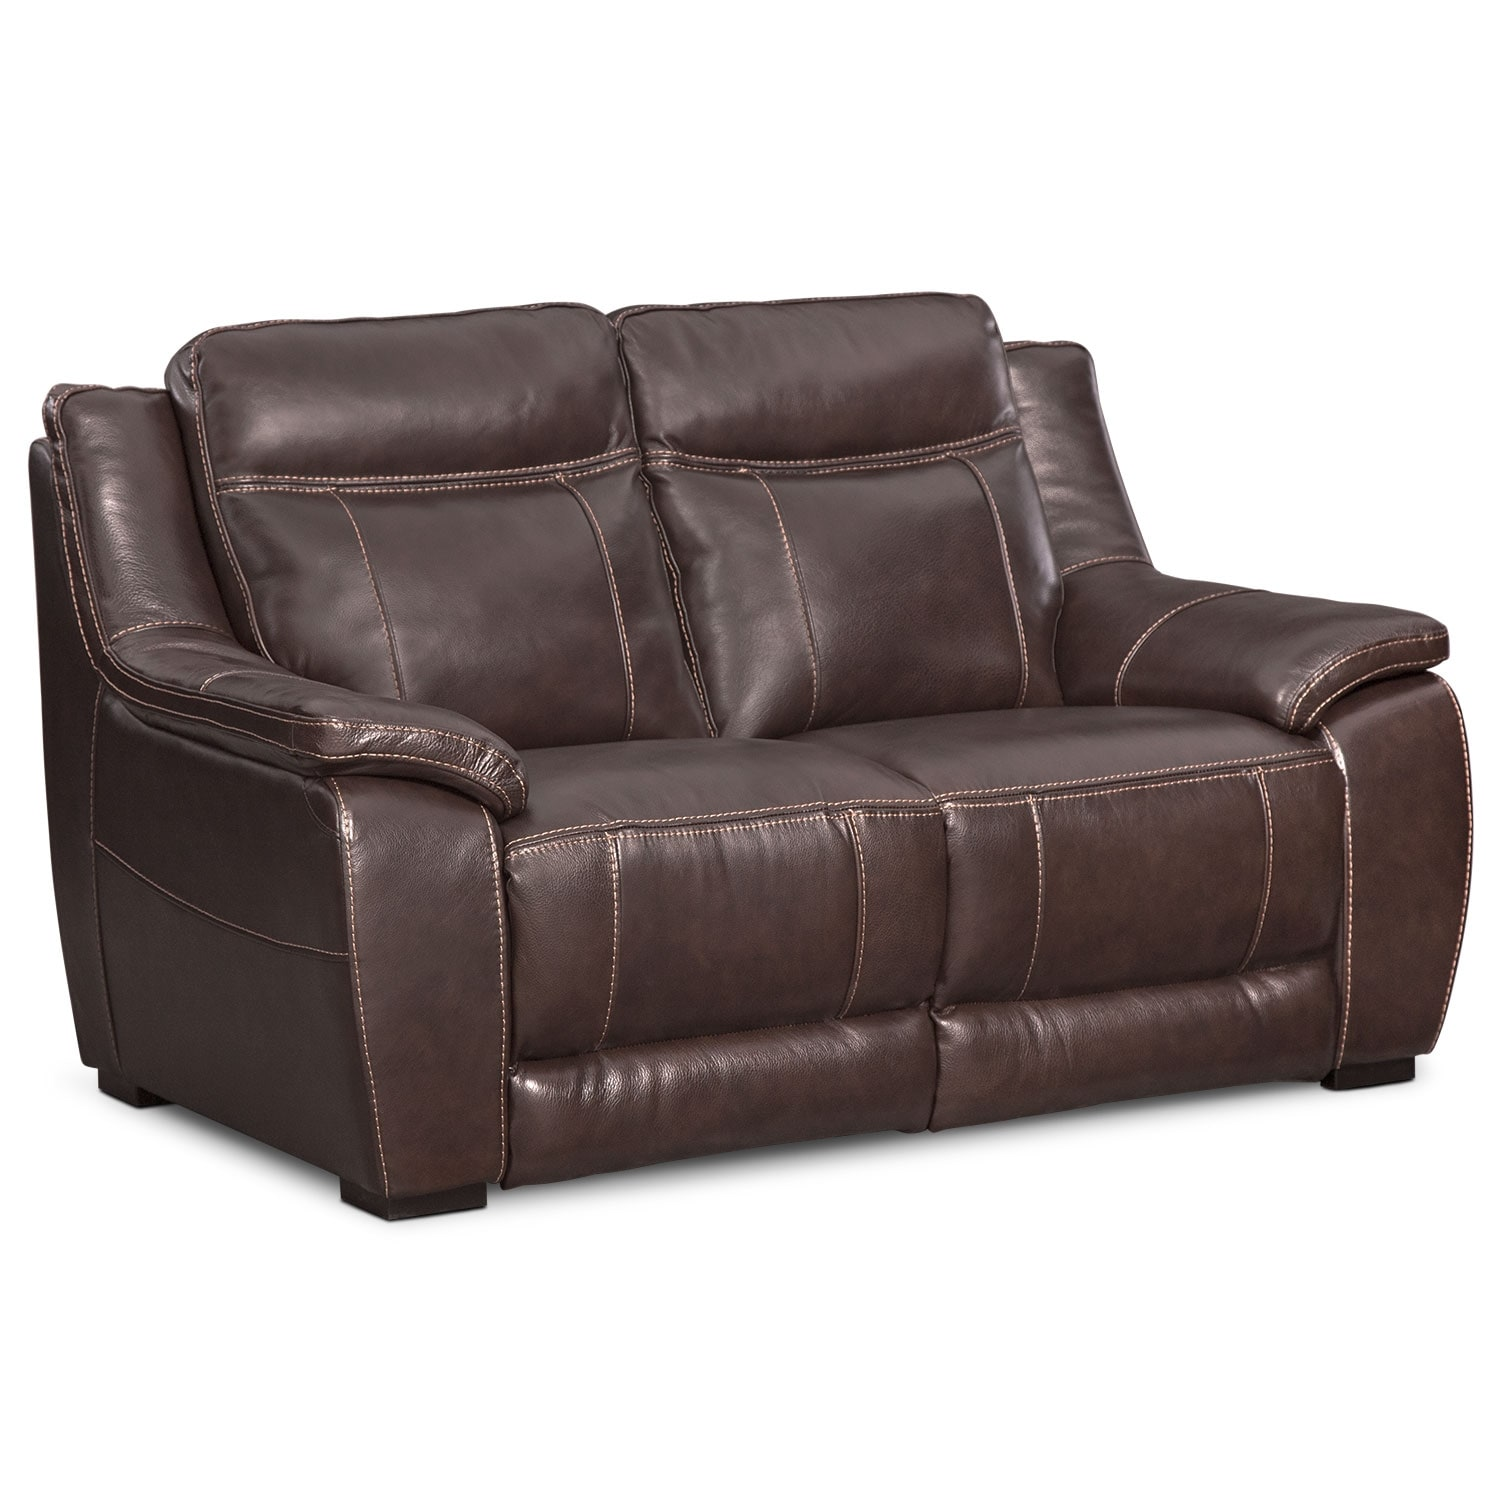 Delicieux Lido Loveseat   Brown